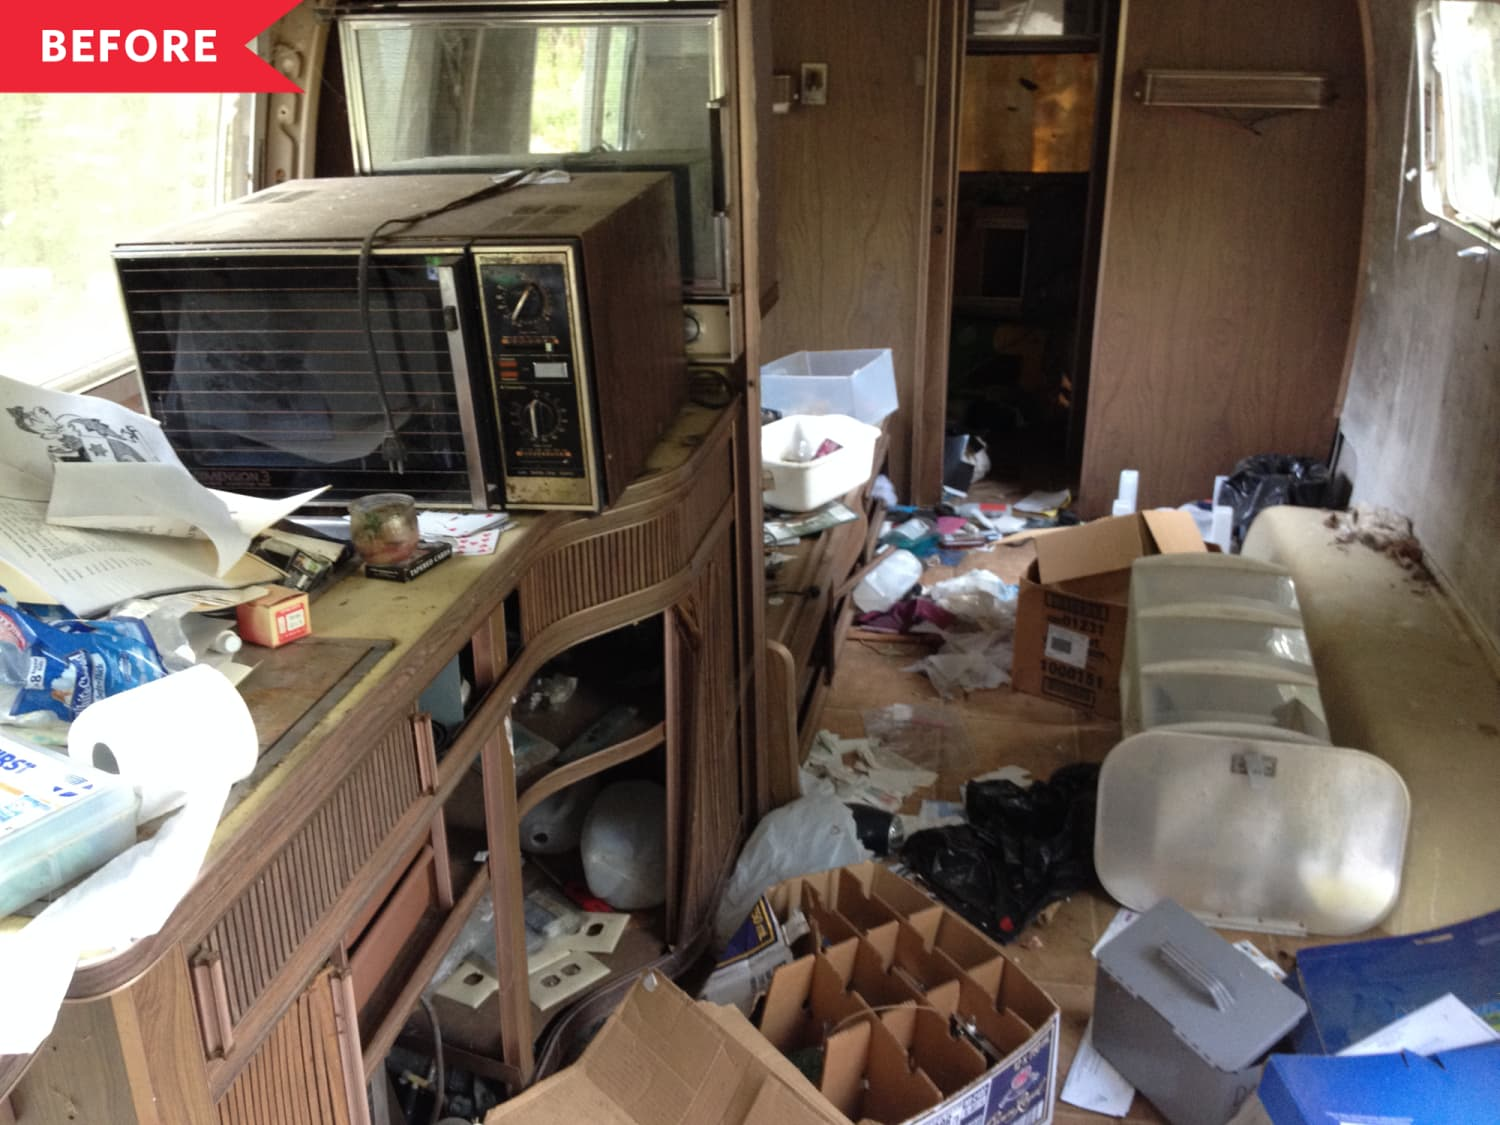 Before & After: This Previously Abandoned Airstream Now Has a Super-Gorgeous Kitchen